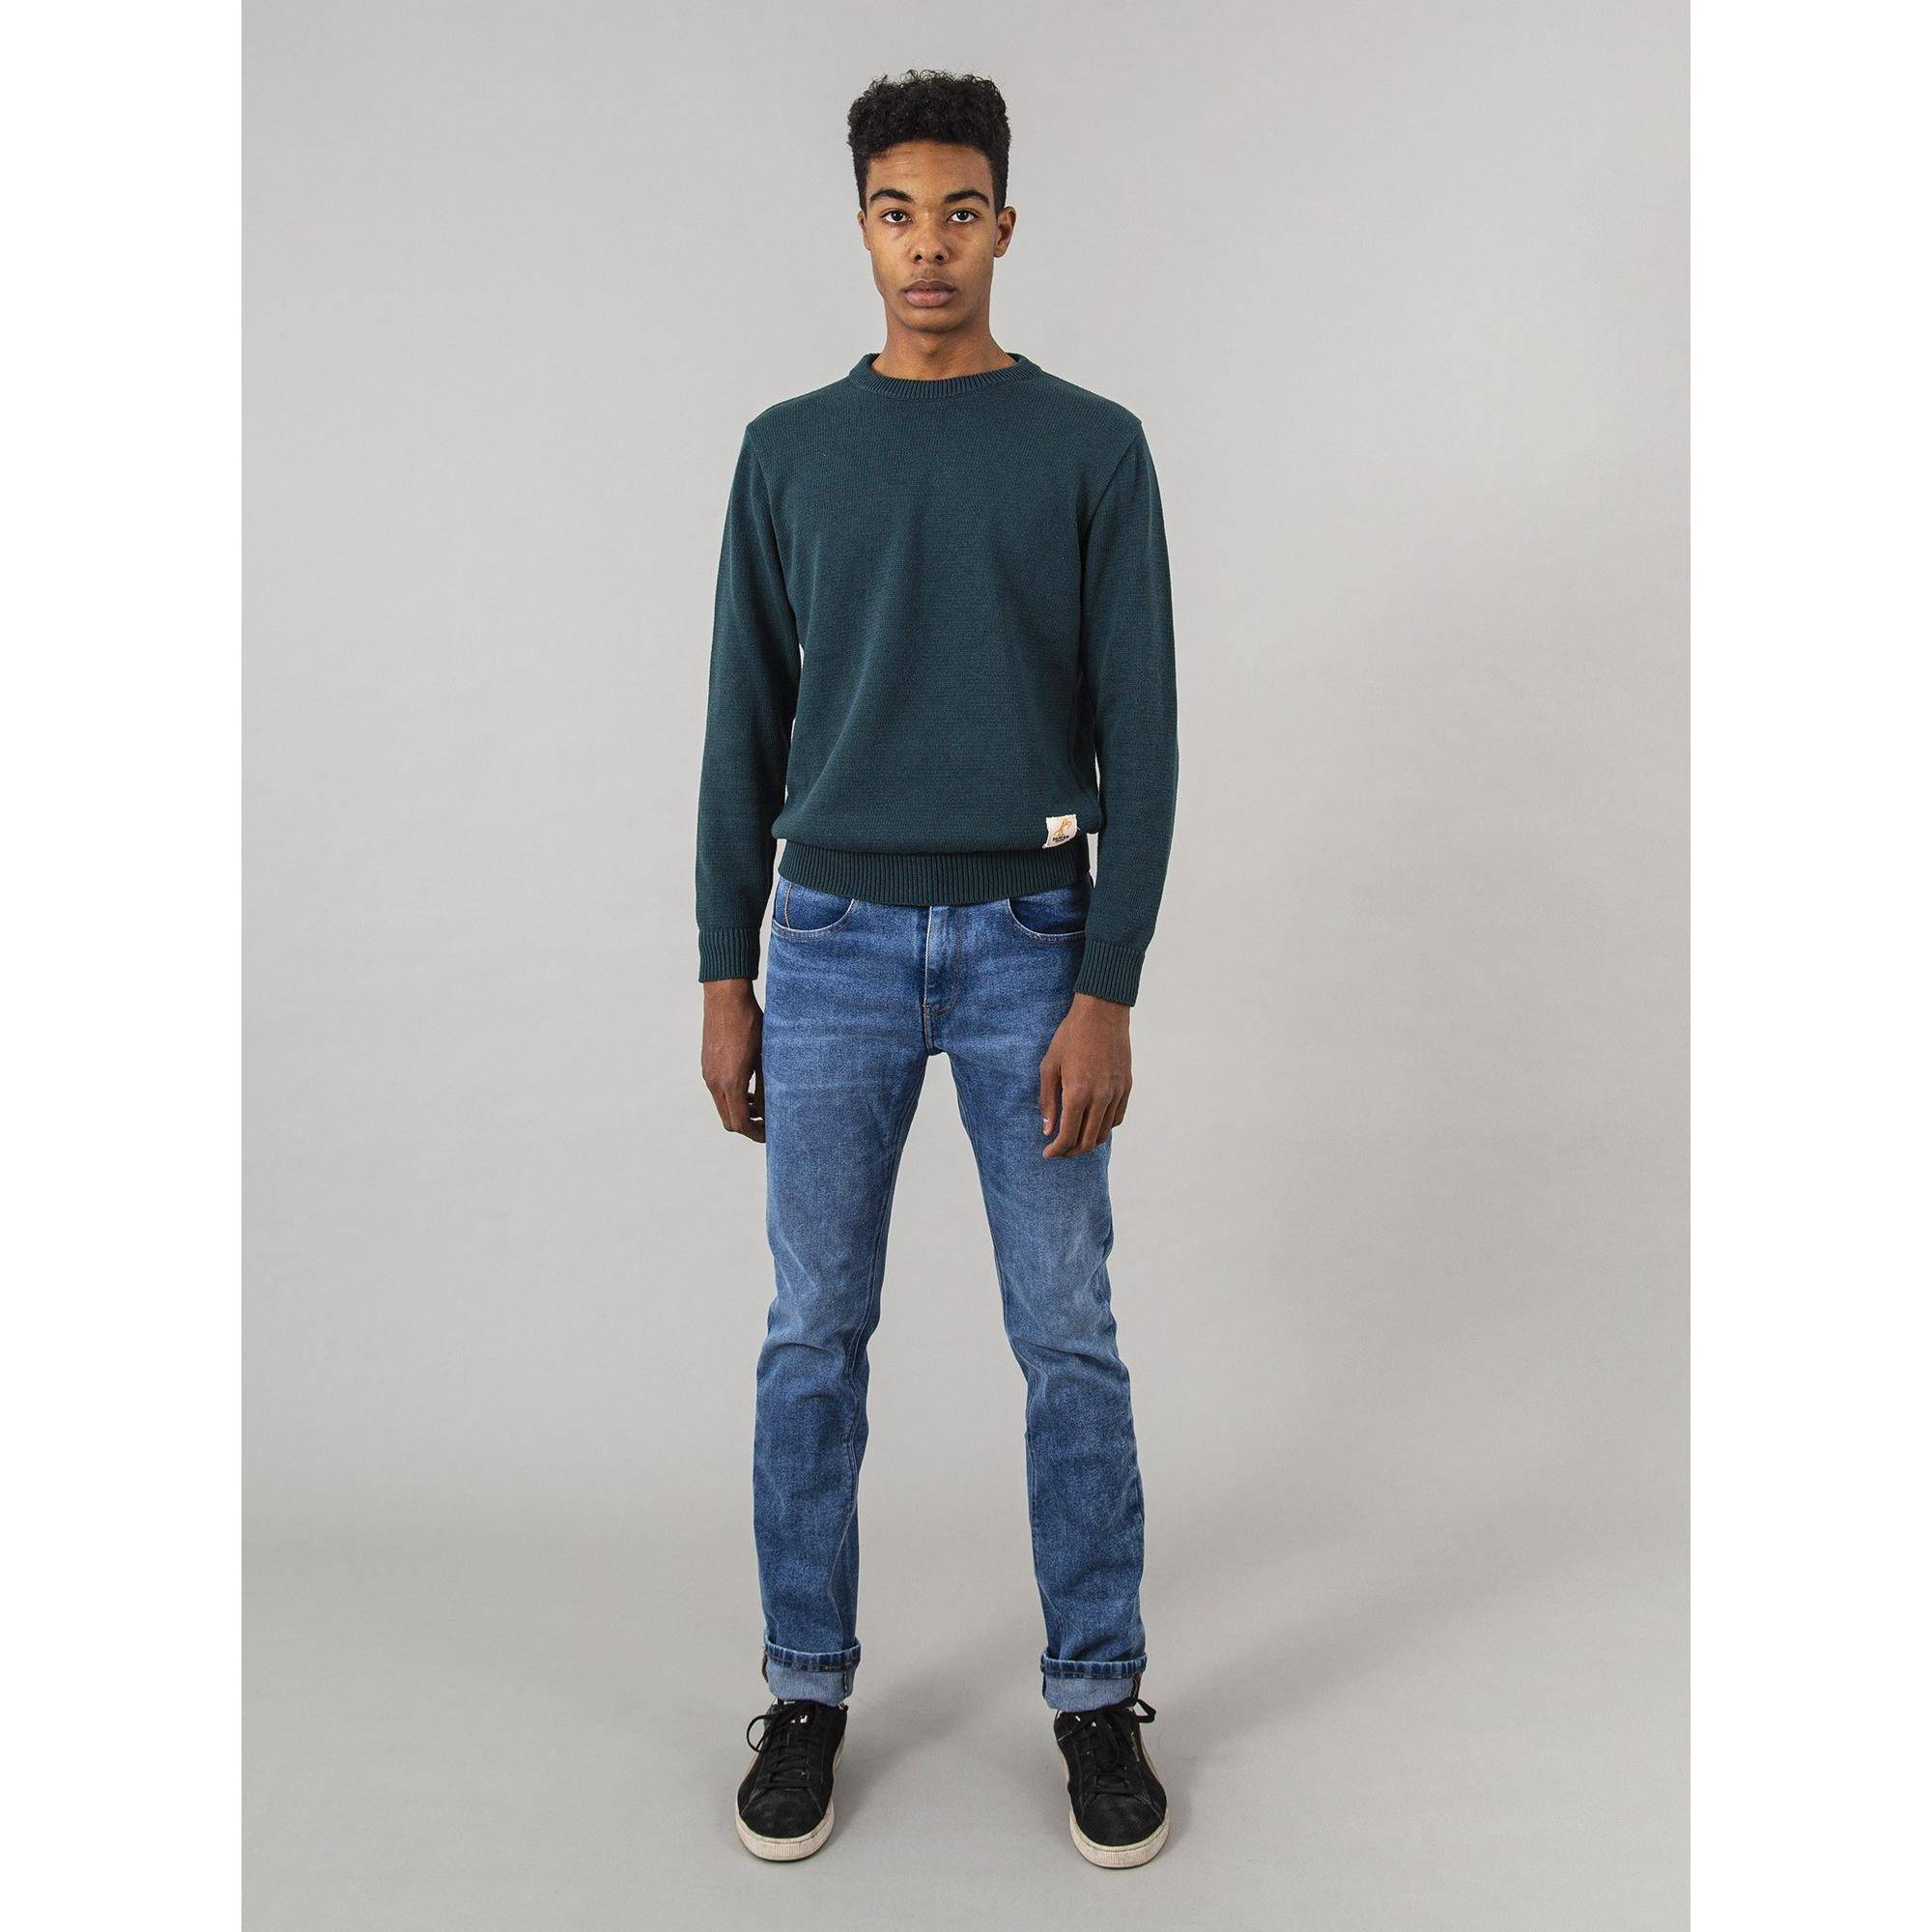 Capitán Denim Vaqueros RAY ECO RE-FORCED BLUE algodón reciclado Capitán Denim 42